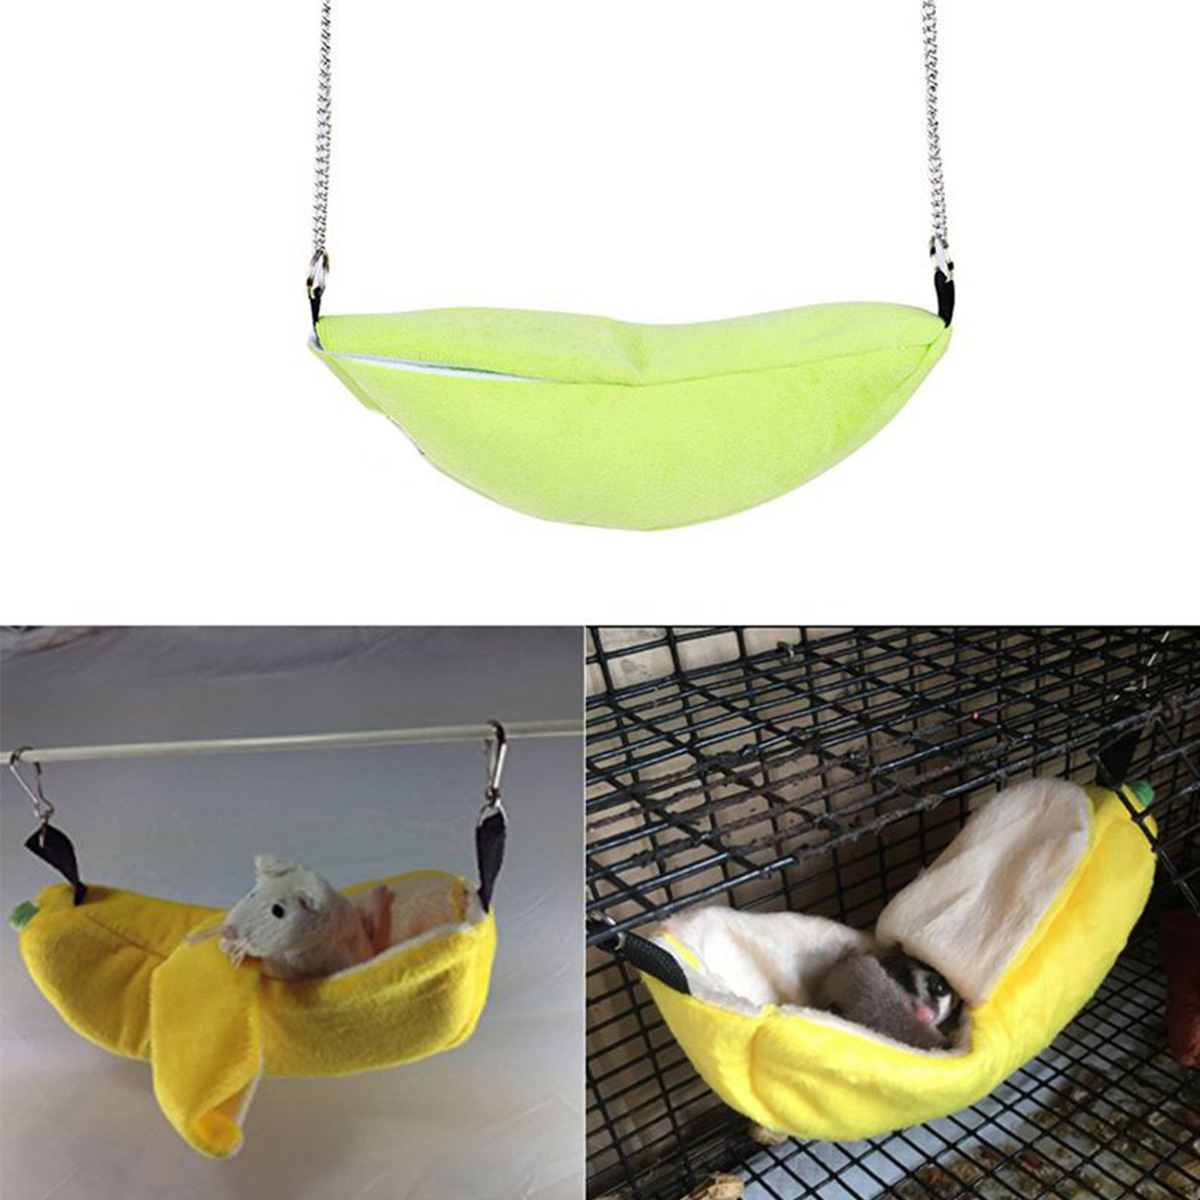 Banana Hamster Bed House Hammock Small Animal Bed House Cage Nest Hamster Accessories For Hamster Small Bird Pet